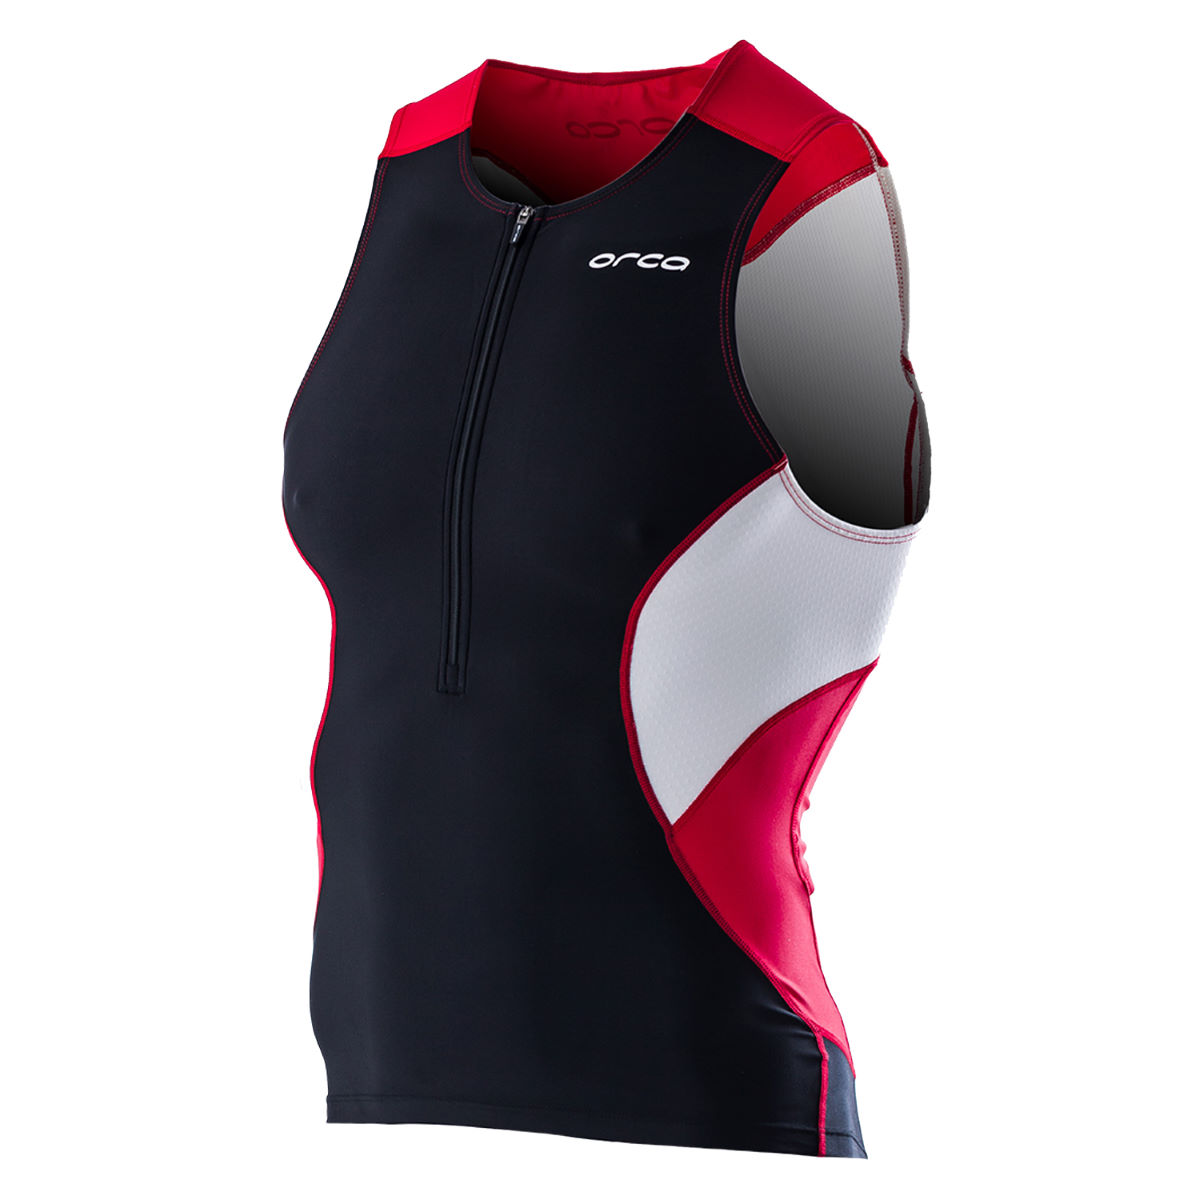 Débardeur de triathlon Orca Core - XS Black/Poinsettia